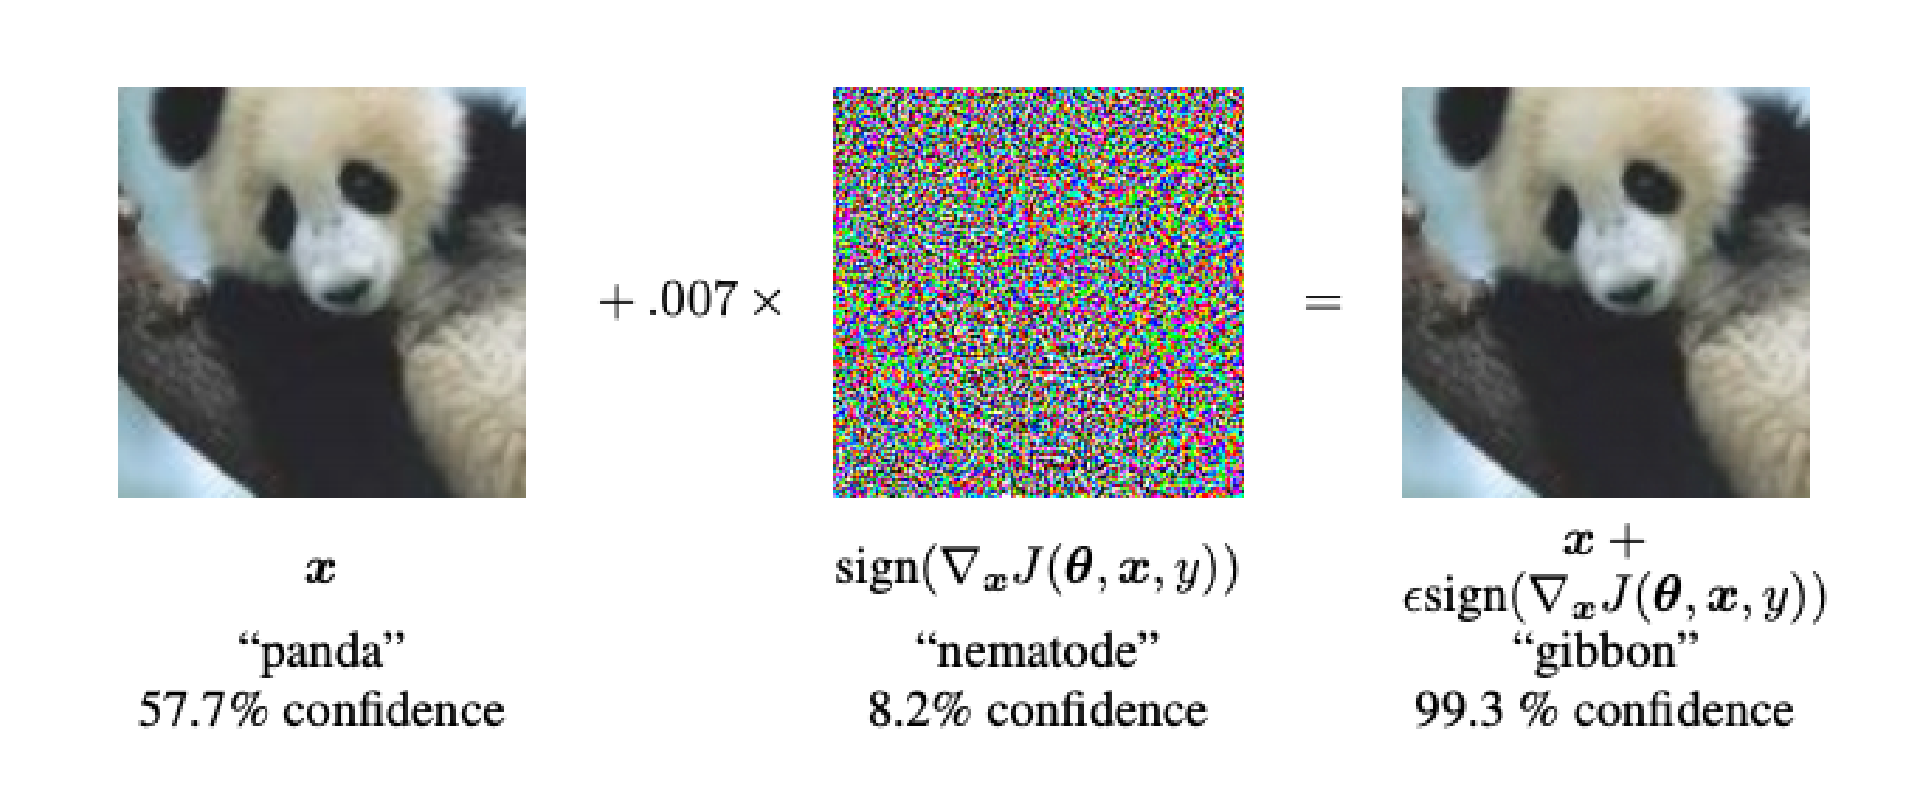 Here's Tensorflow's example of introducing static to fool an image classifier. The math below the pixels essentially says you want to maximize 'loss' (how bad the prediction is) based on the input data.